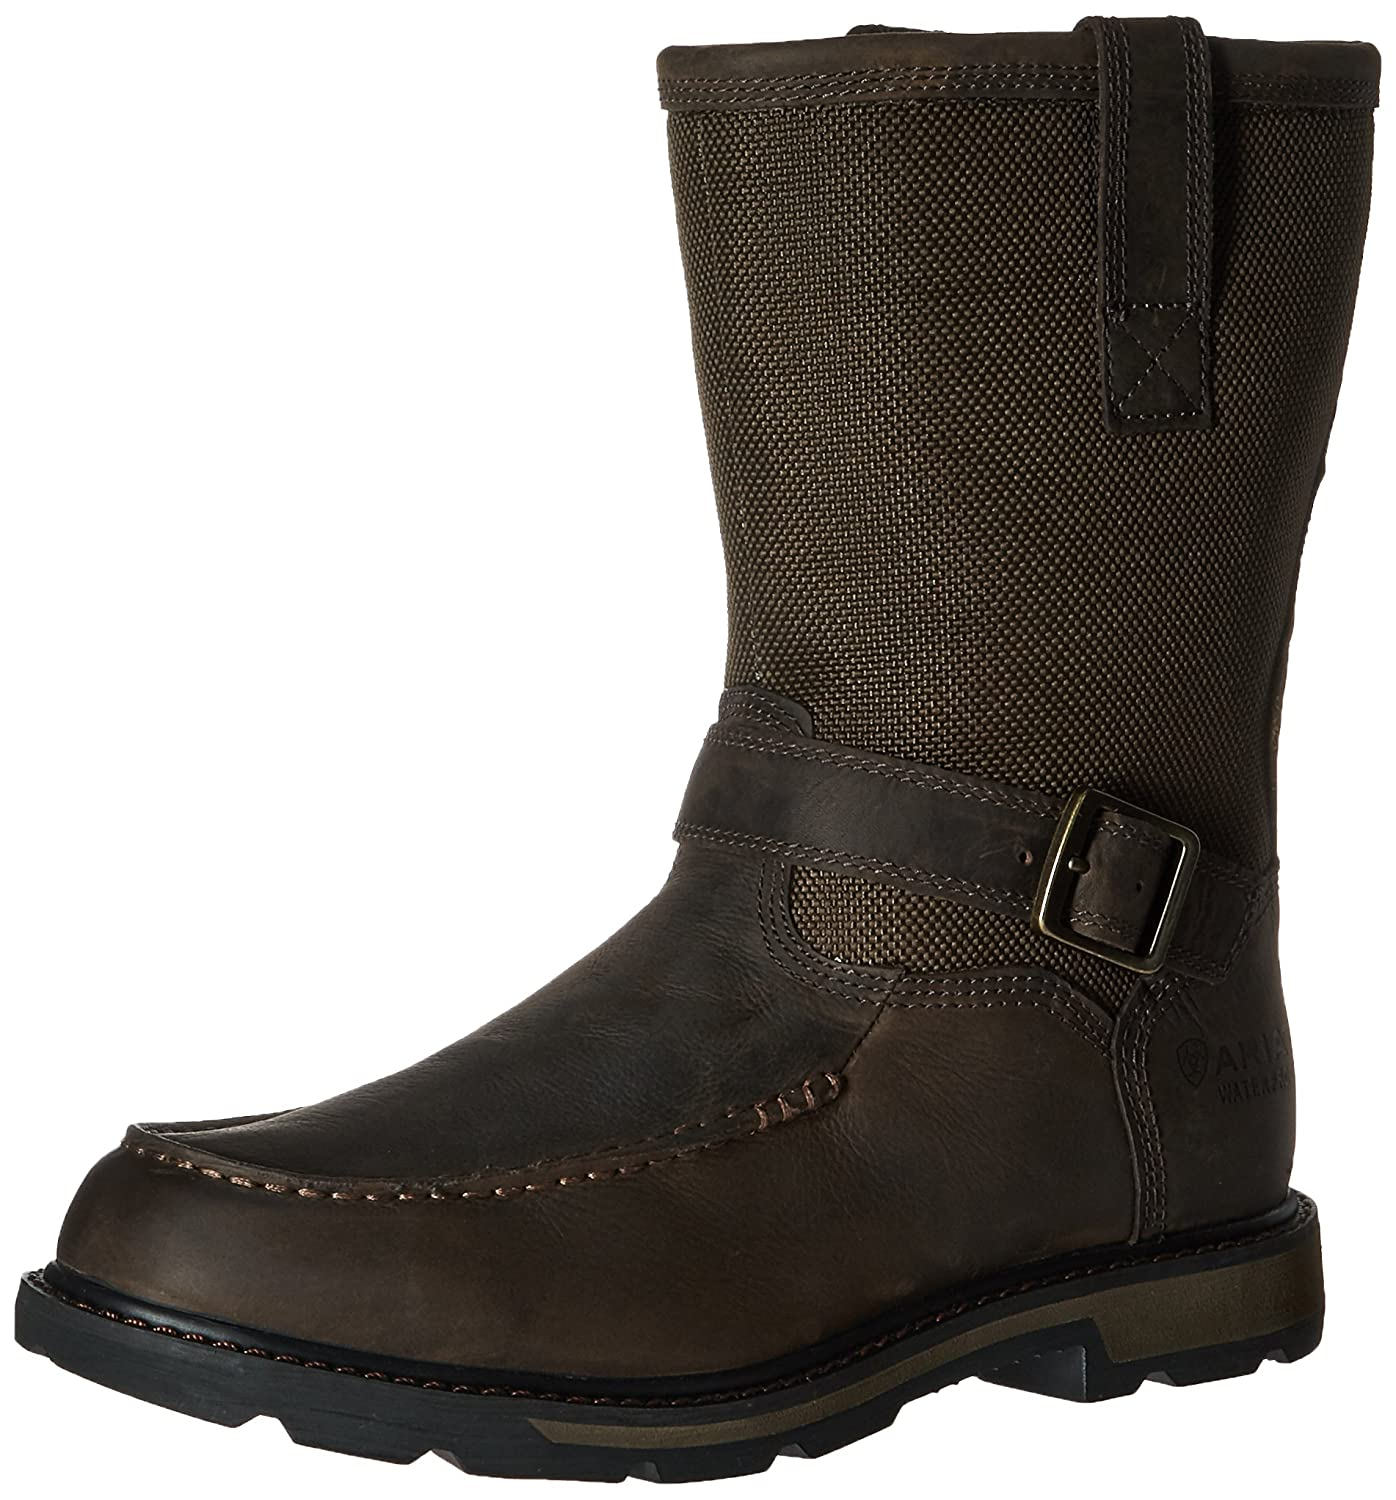 Ariat メンズ B013TCO7X6  Dark Brown/Dark Olive Cordura 11 2E US